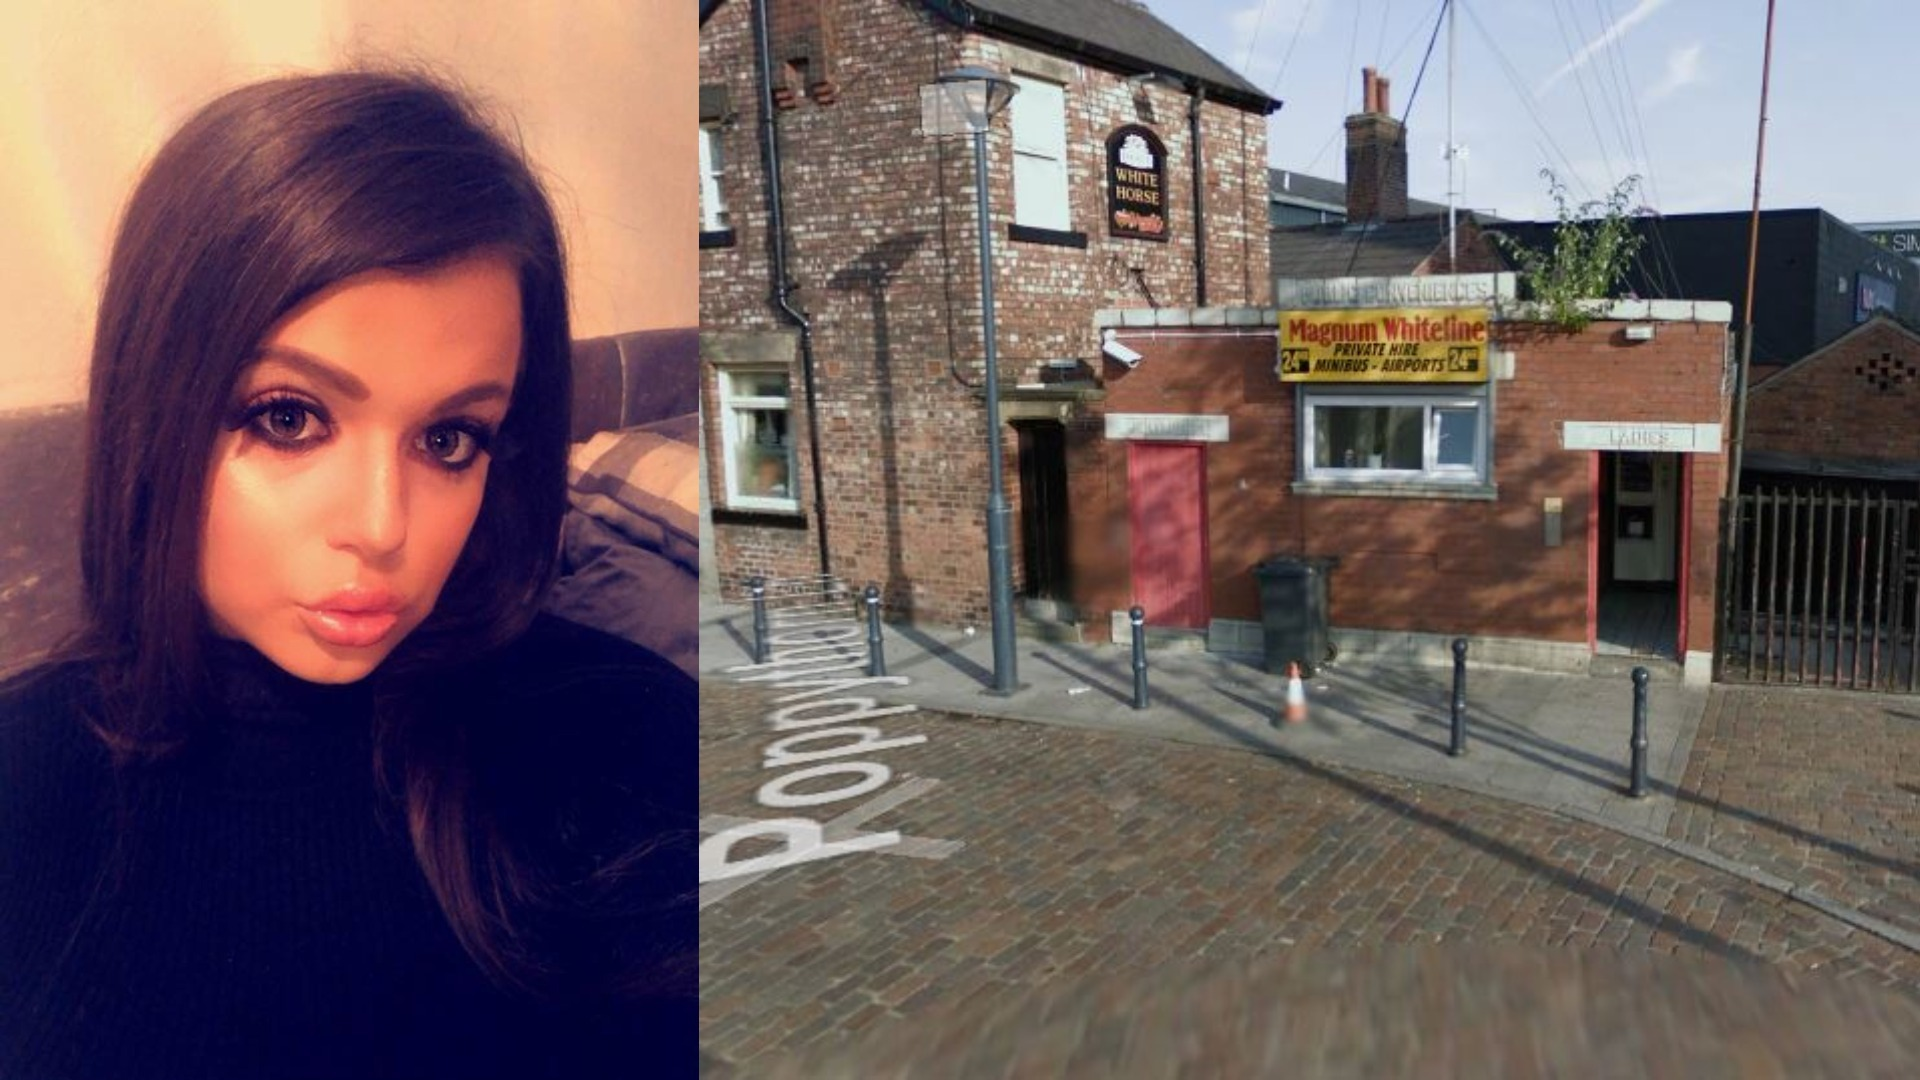 ATTACK: Left - Hollie Talbot. Right - The Magnum Whiteline taxi rank in Prestwich